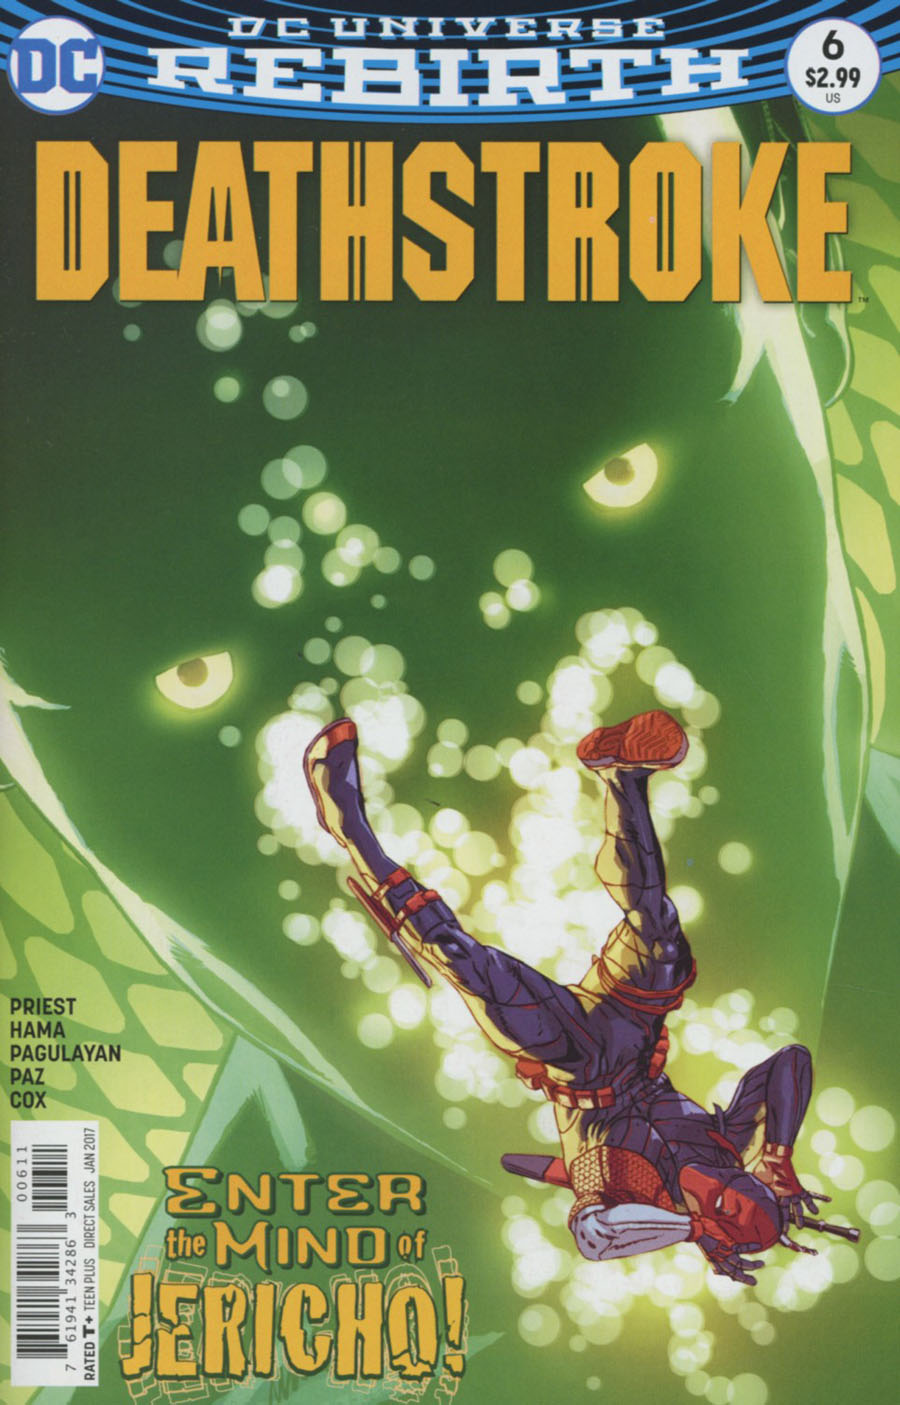 Deathstroke Vol 4 #6 Cover A Regular Aco Cover